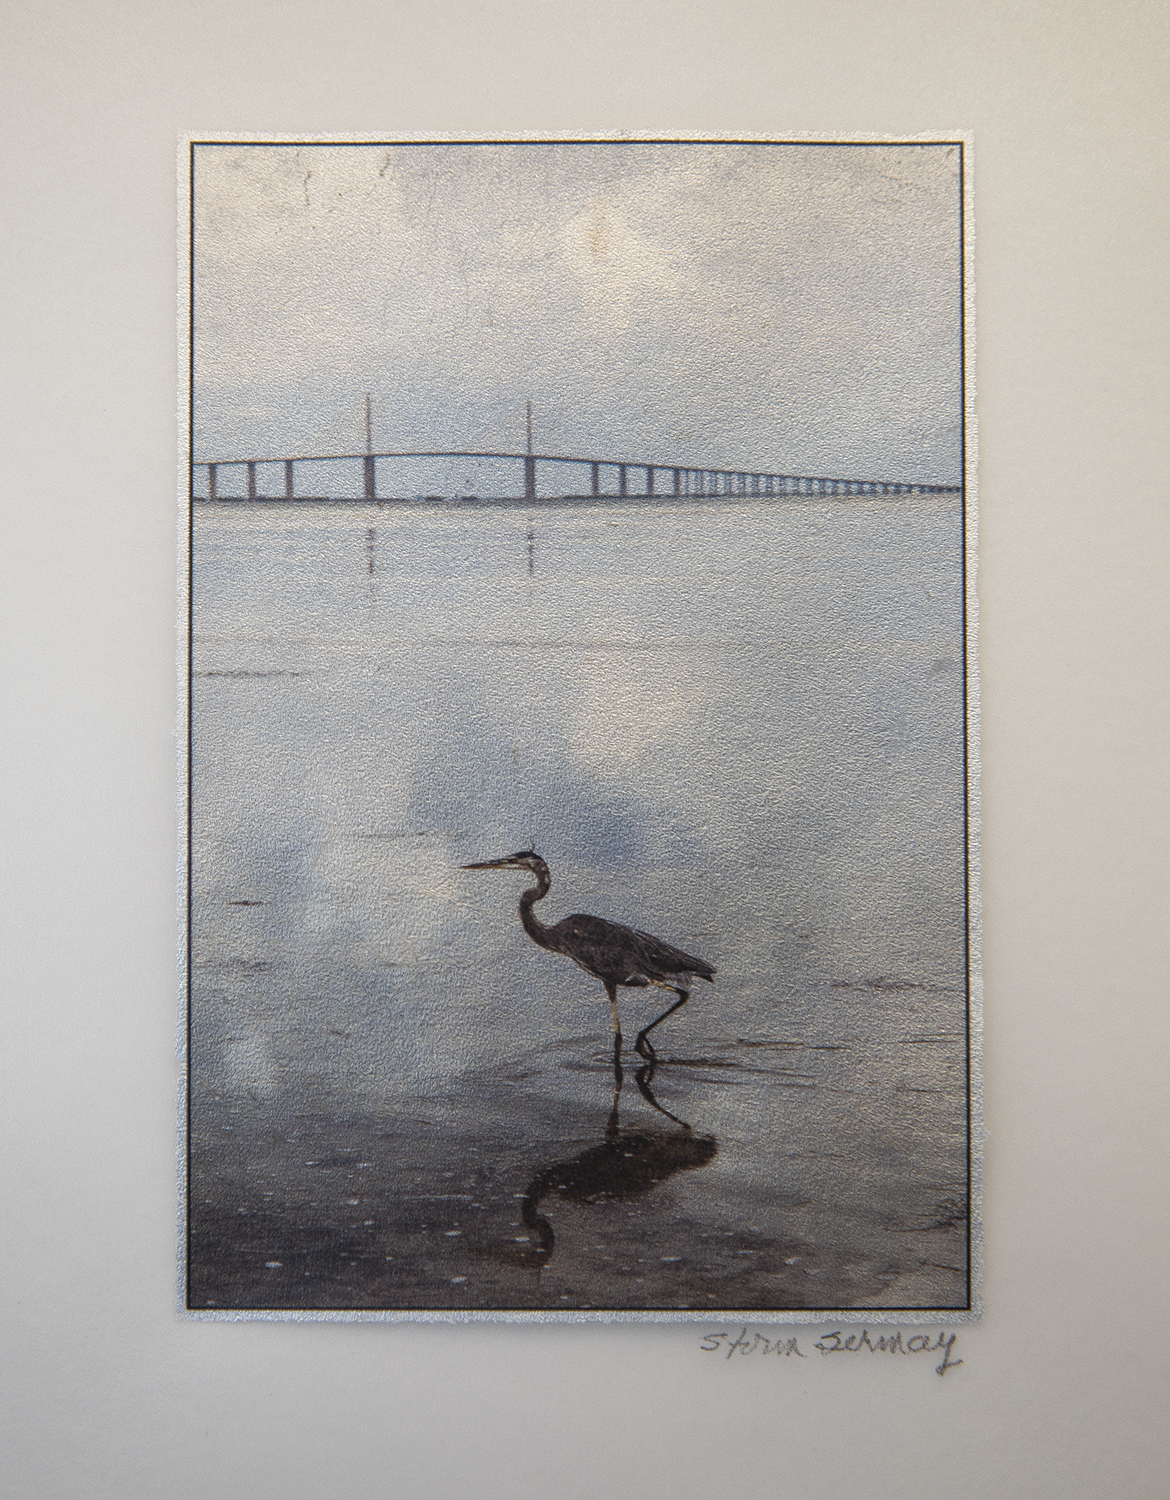 Heron on Tampa Bay with silver leaf